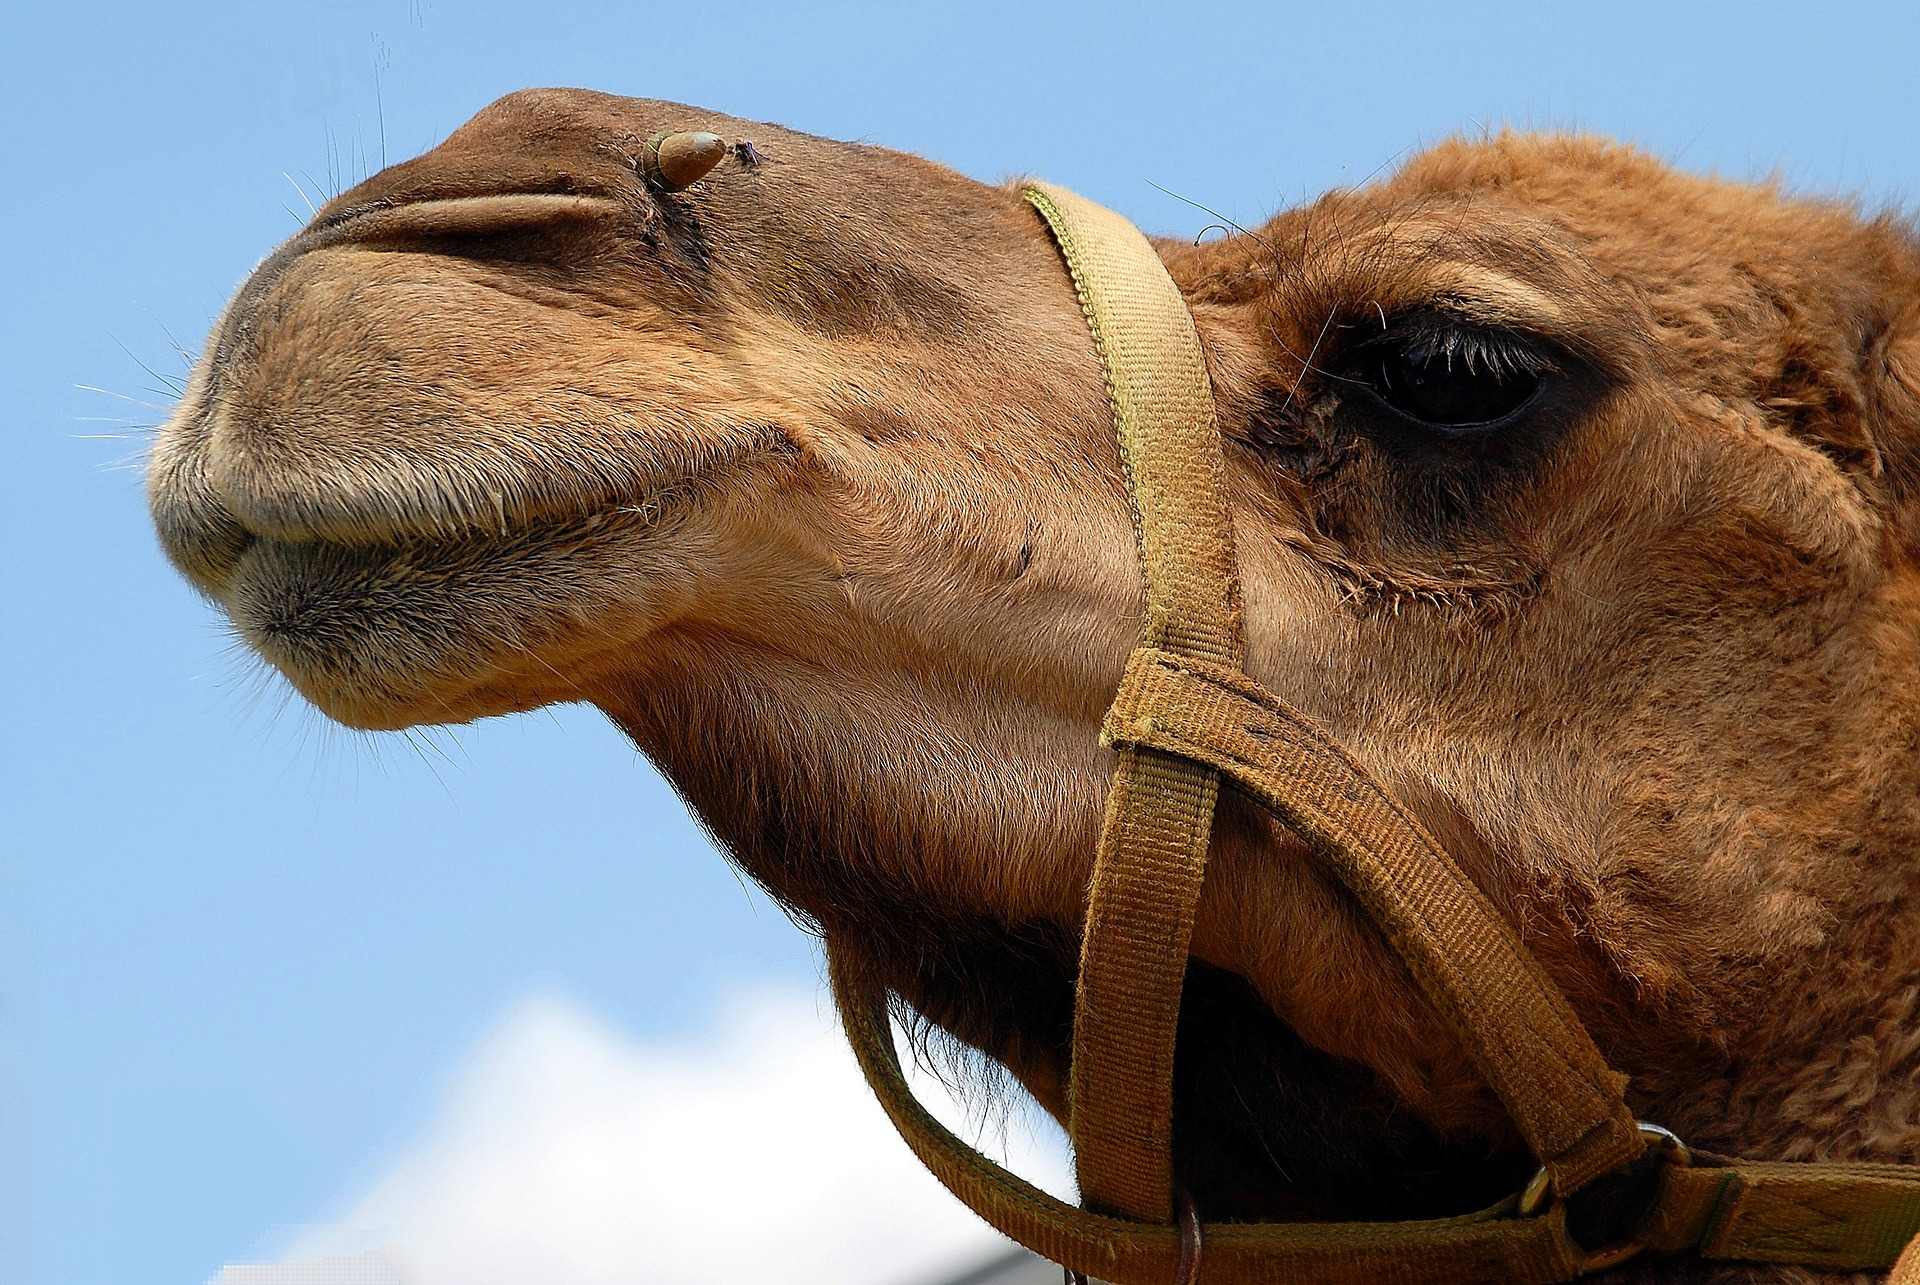 Weird reasons for divorce - woman preferred camel to husband